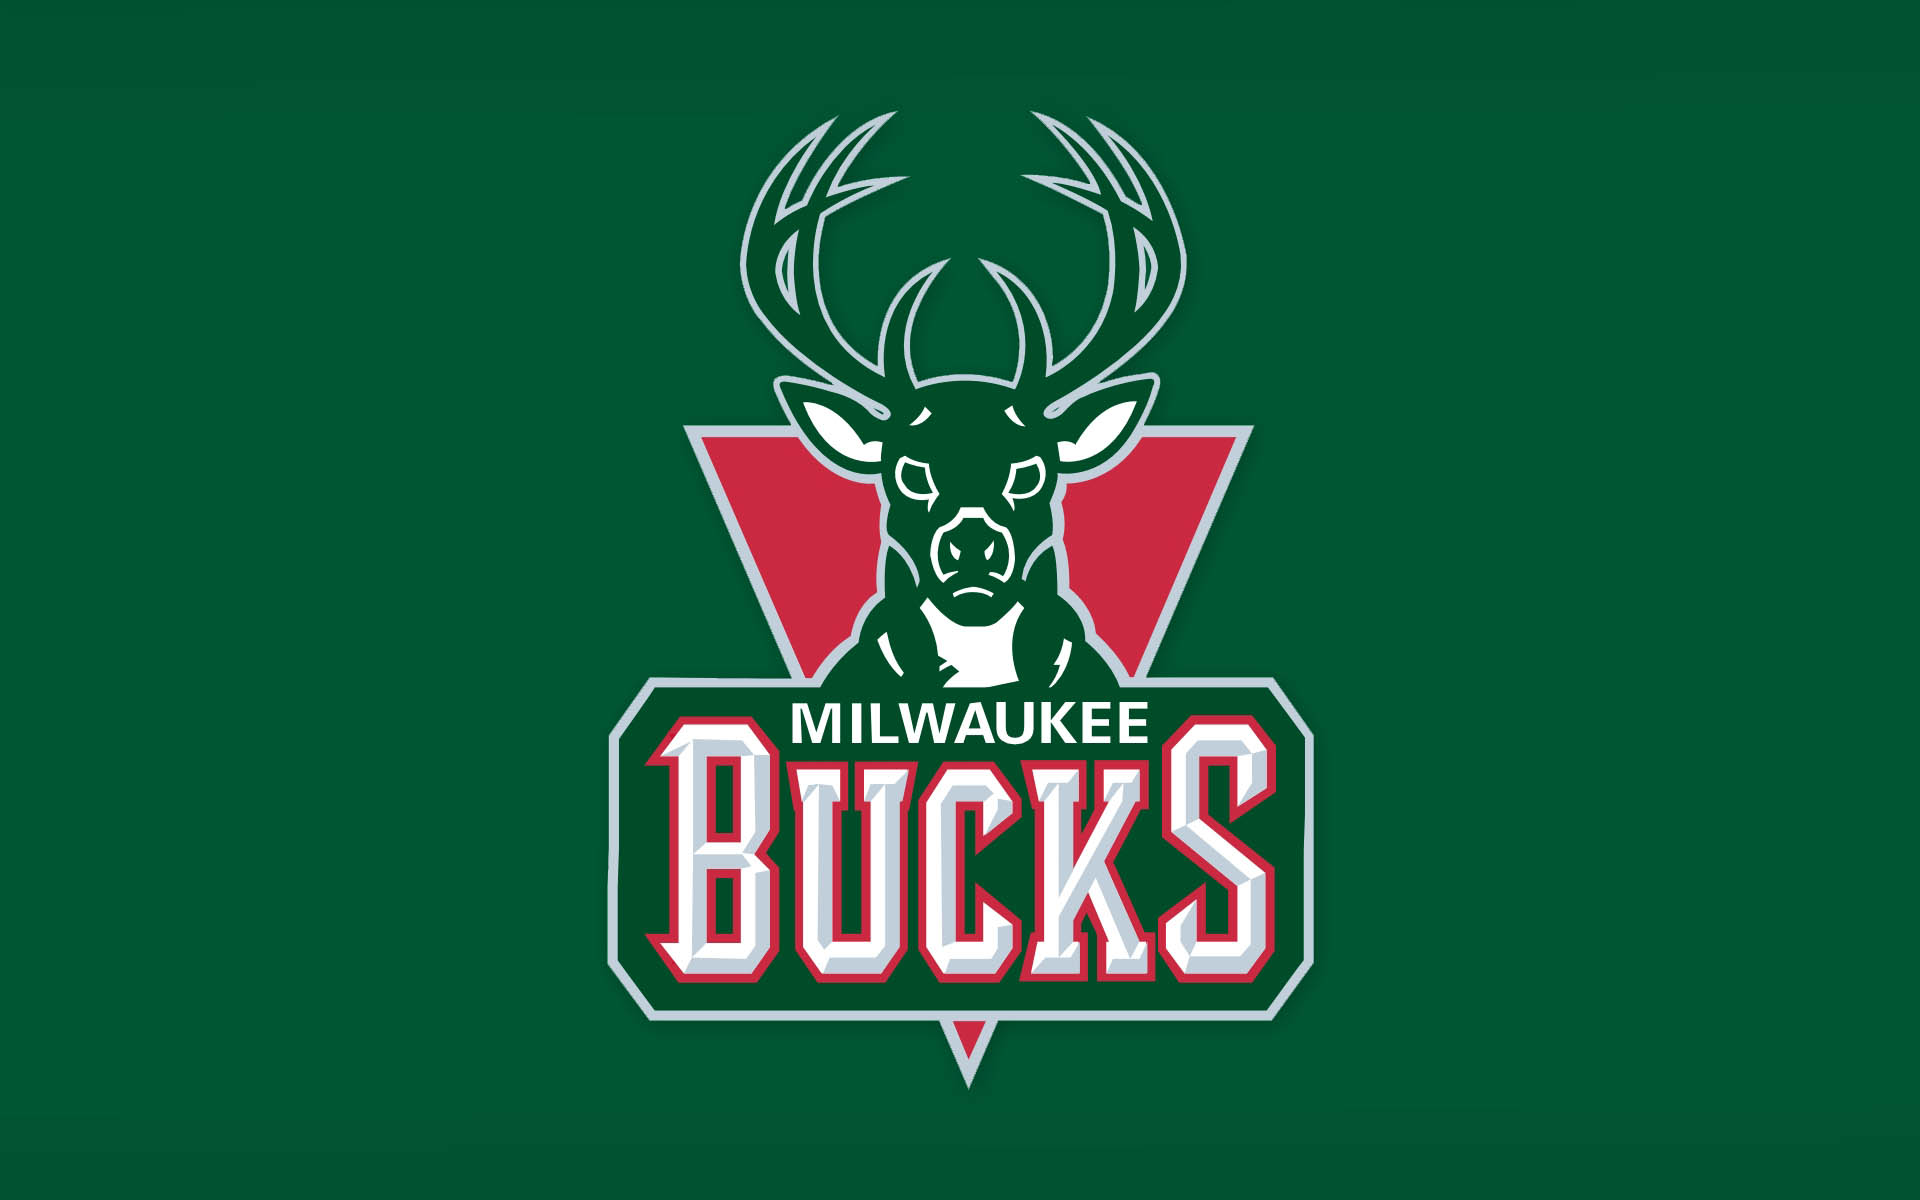 Fantastic Cars Hd Wallpapers Milwaukee Bucks Wallpapers Hd Full Hd Pictures